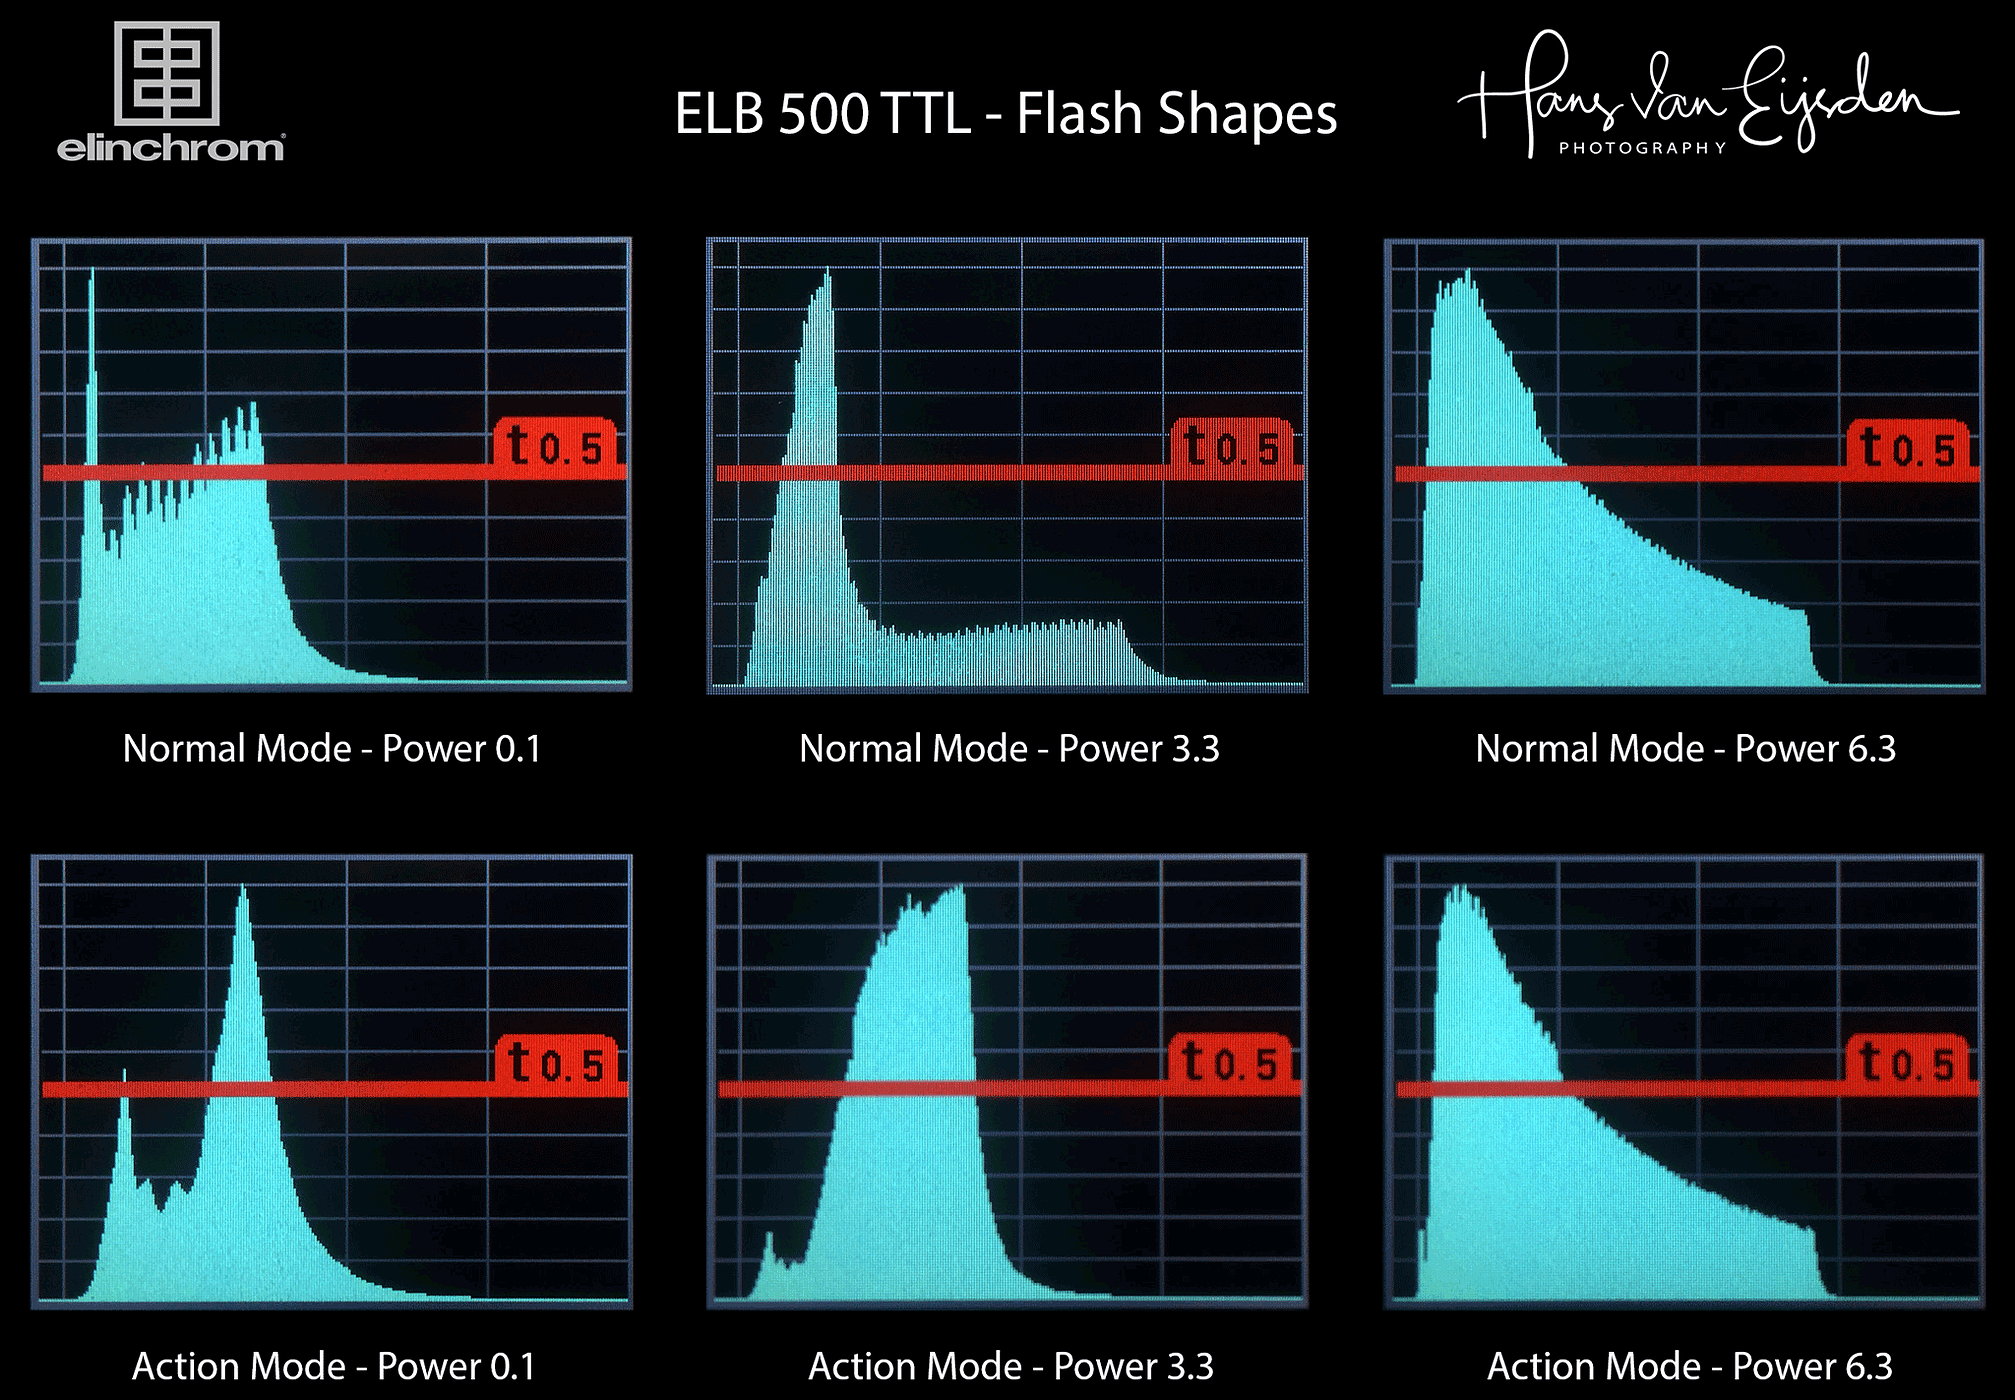 ELB 500 TTL Flash Shapes